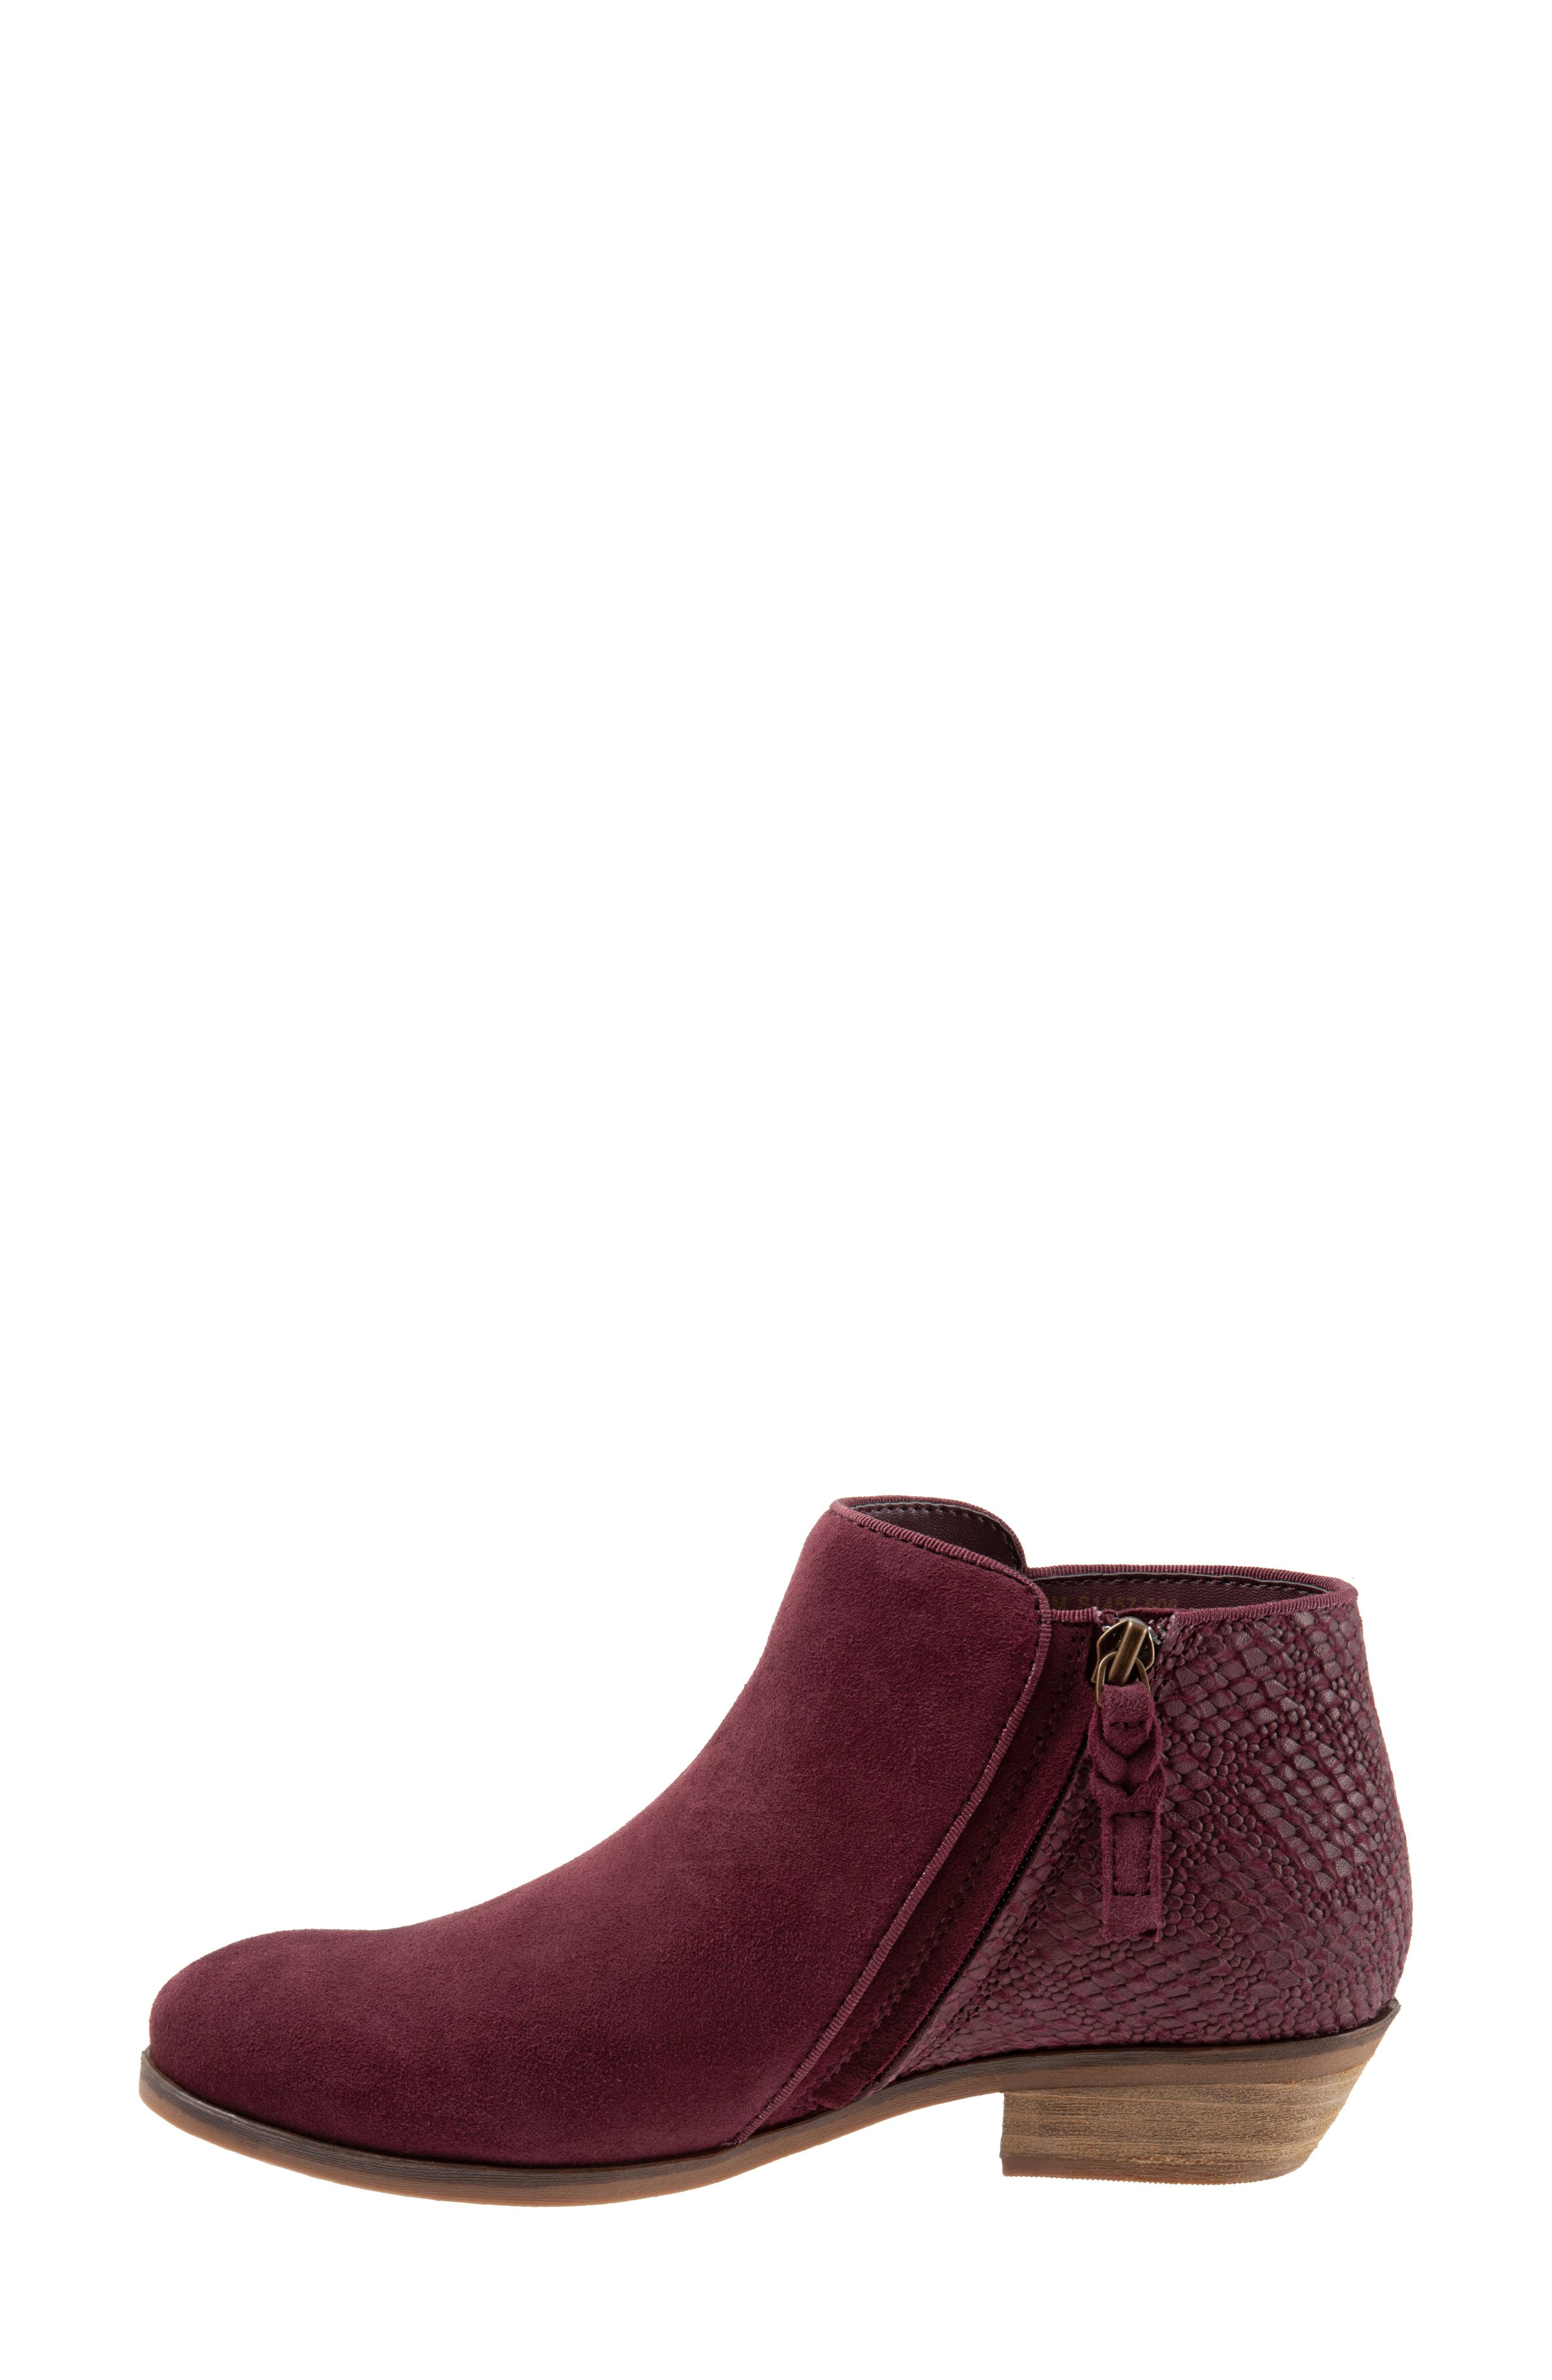 'Rocklin' Bootie,                             Alternate thumbnail 8, color,                             BURGUNDY LEATHER